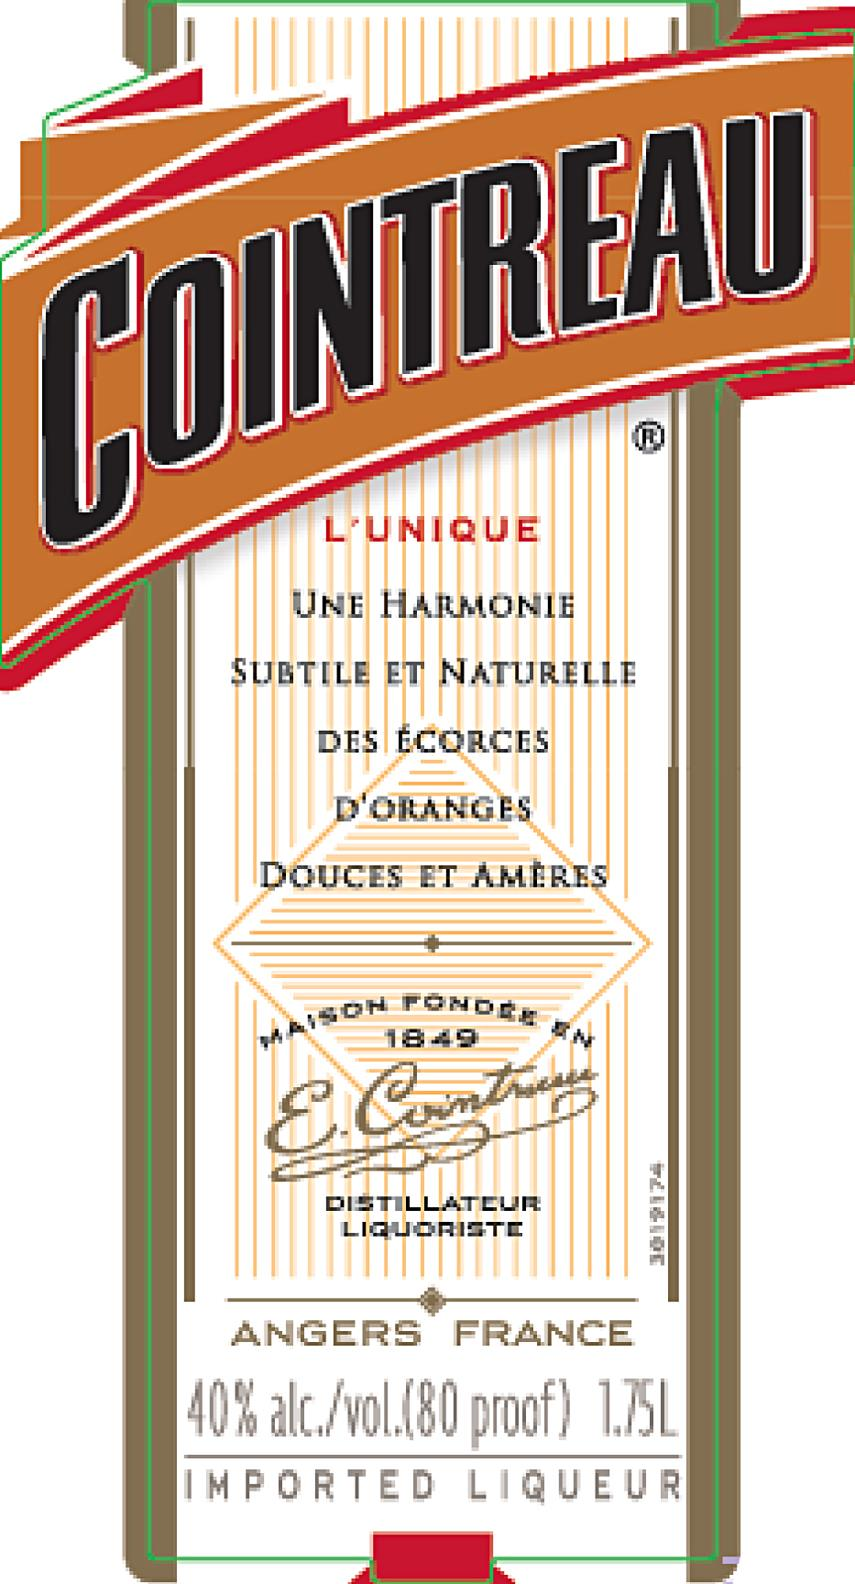 If you have triple sec on hand, that's fine, but Cointreau has the magic combo of bitterness, sweetness, and smooth orangey flavor that adds a great dimension to many cocktails, including a Sidecar.